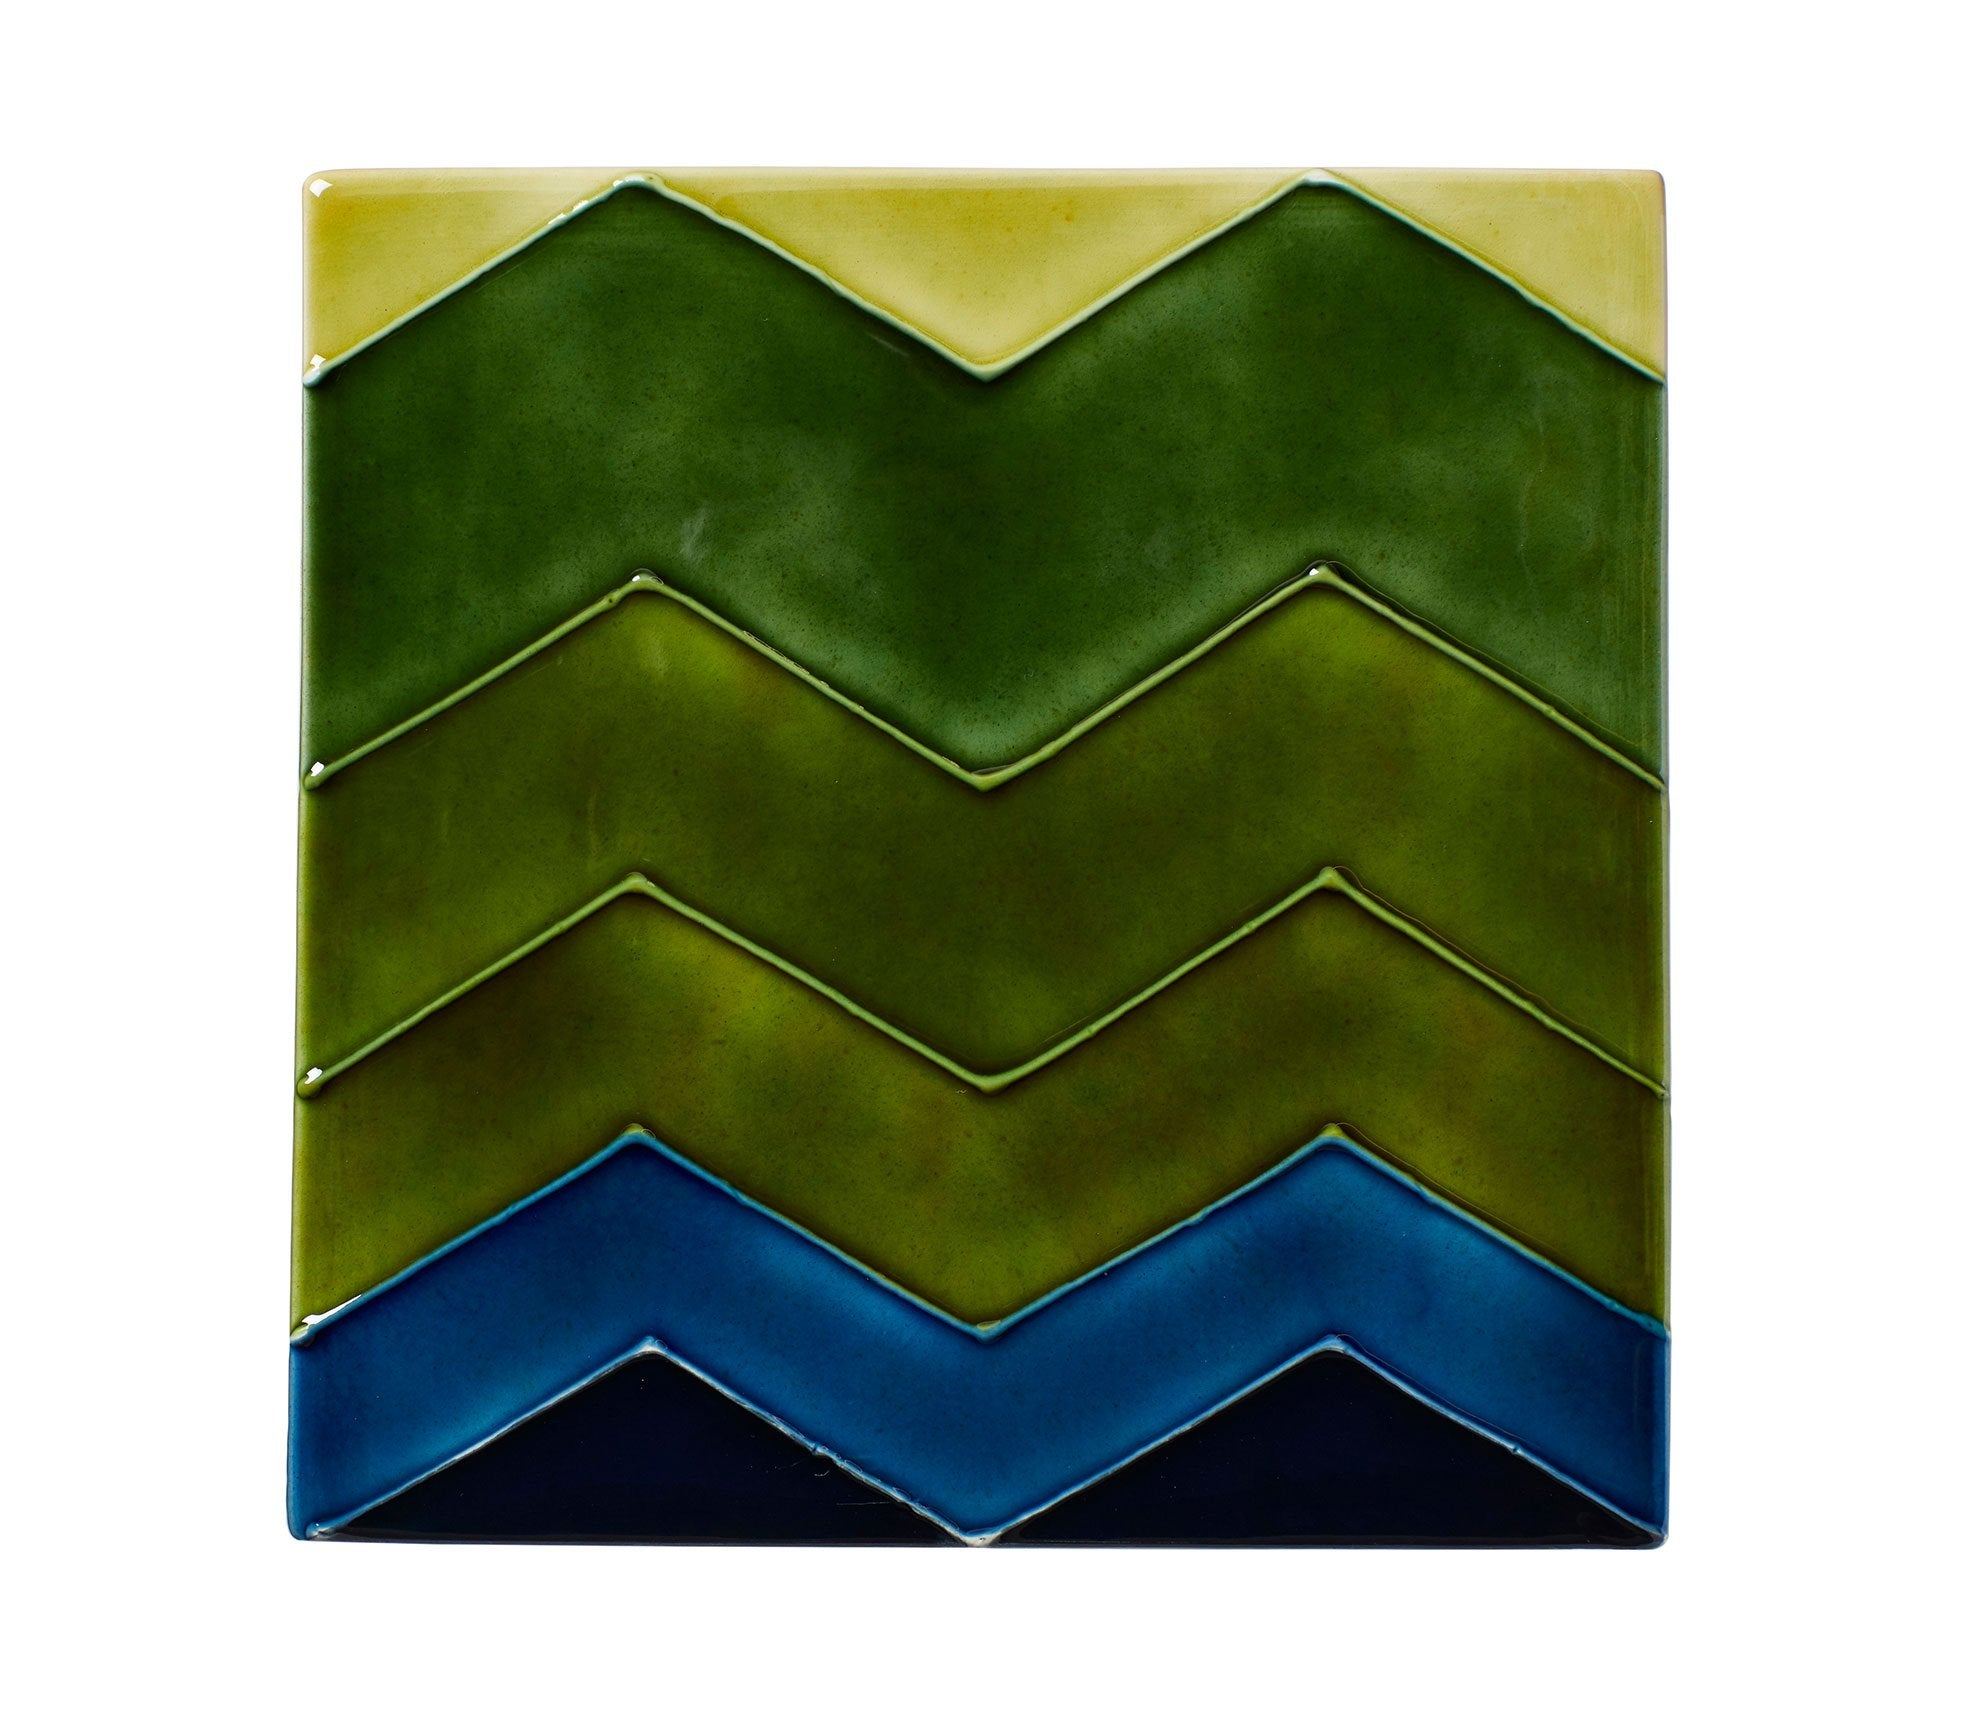 Hanley Tube Lined Decorative Tiles Product Image 29